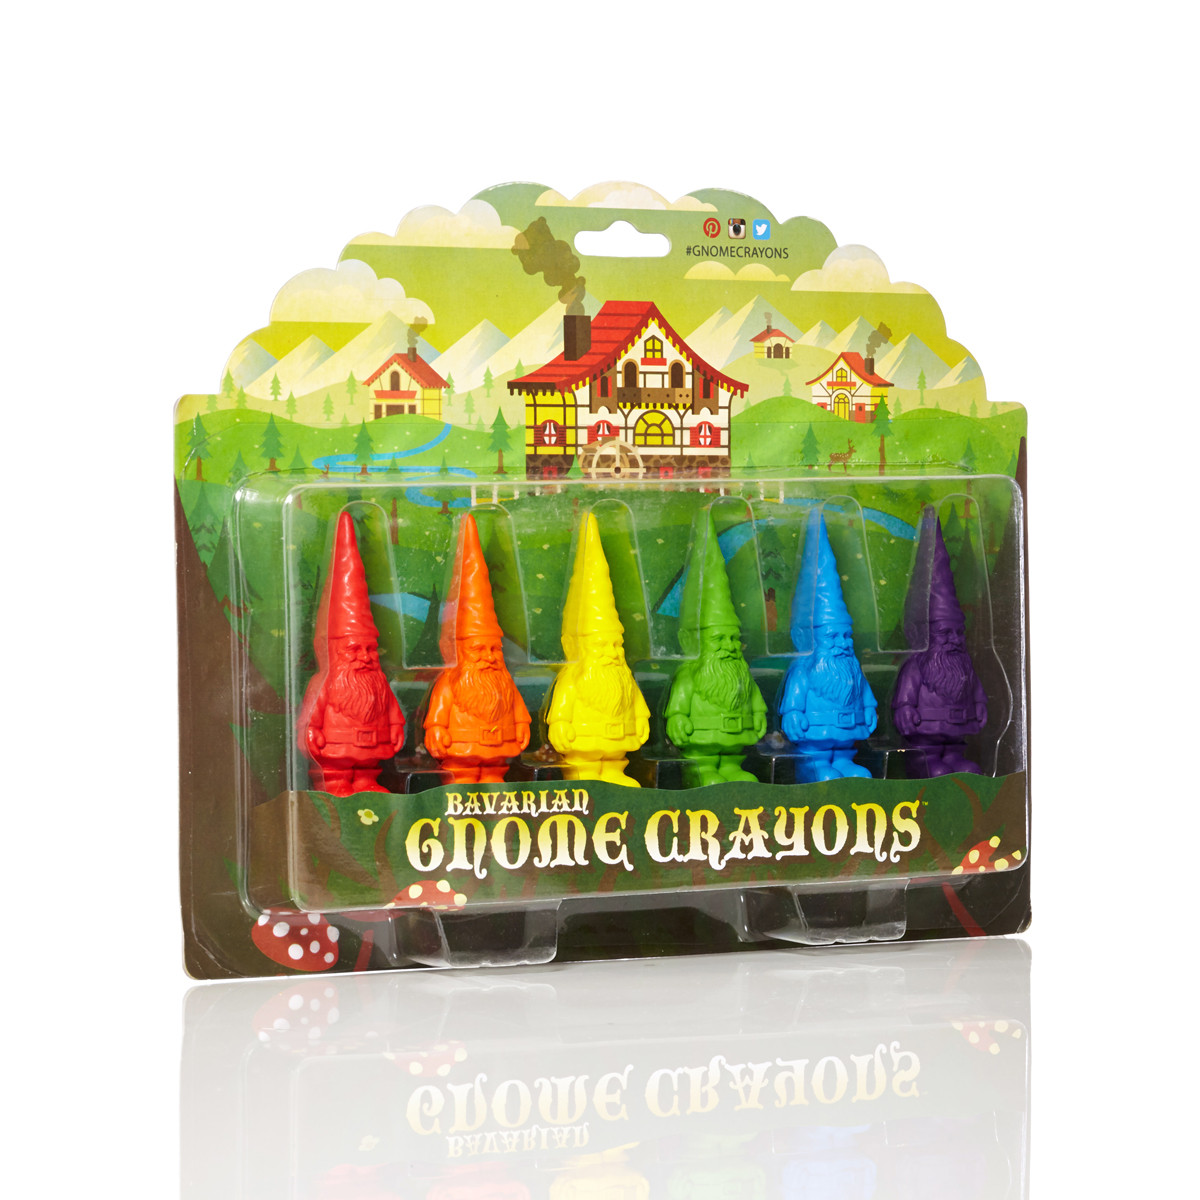 Gnome Crayons Packaging Design by DKNG